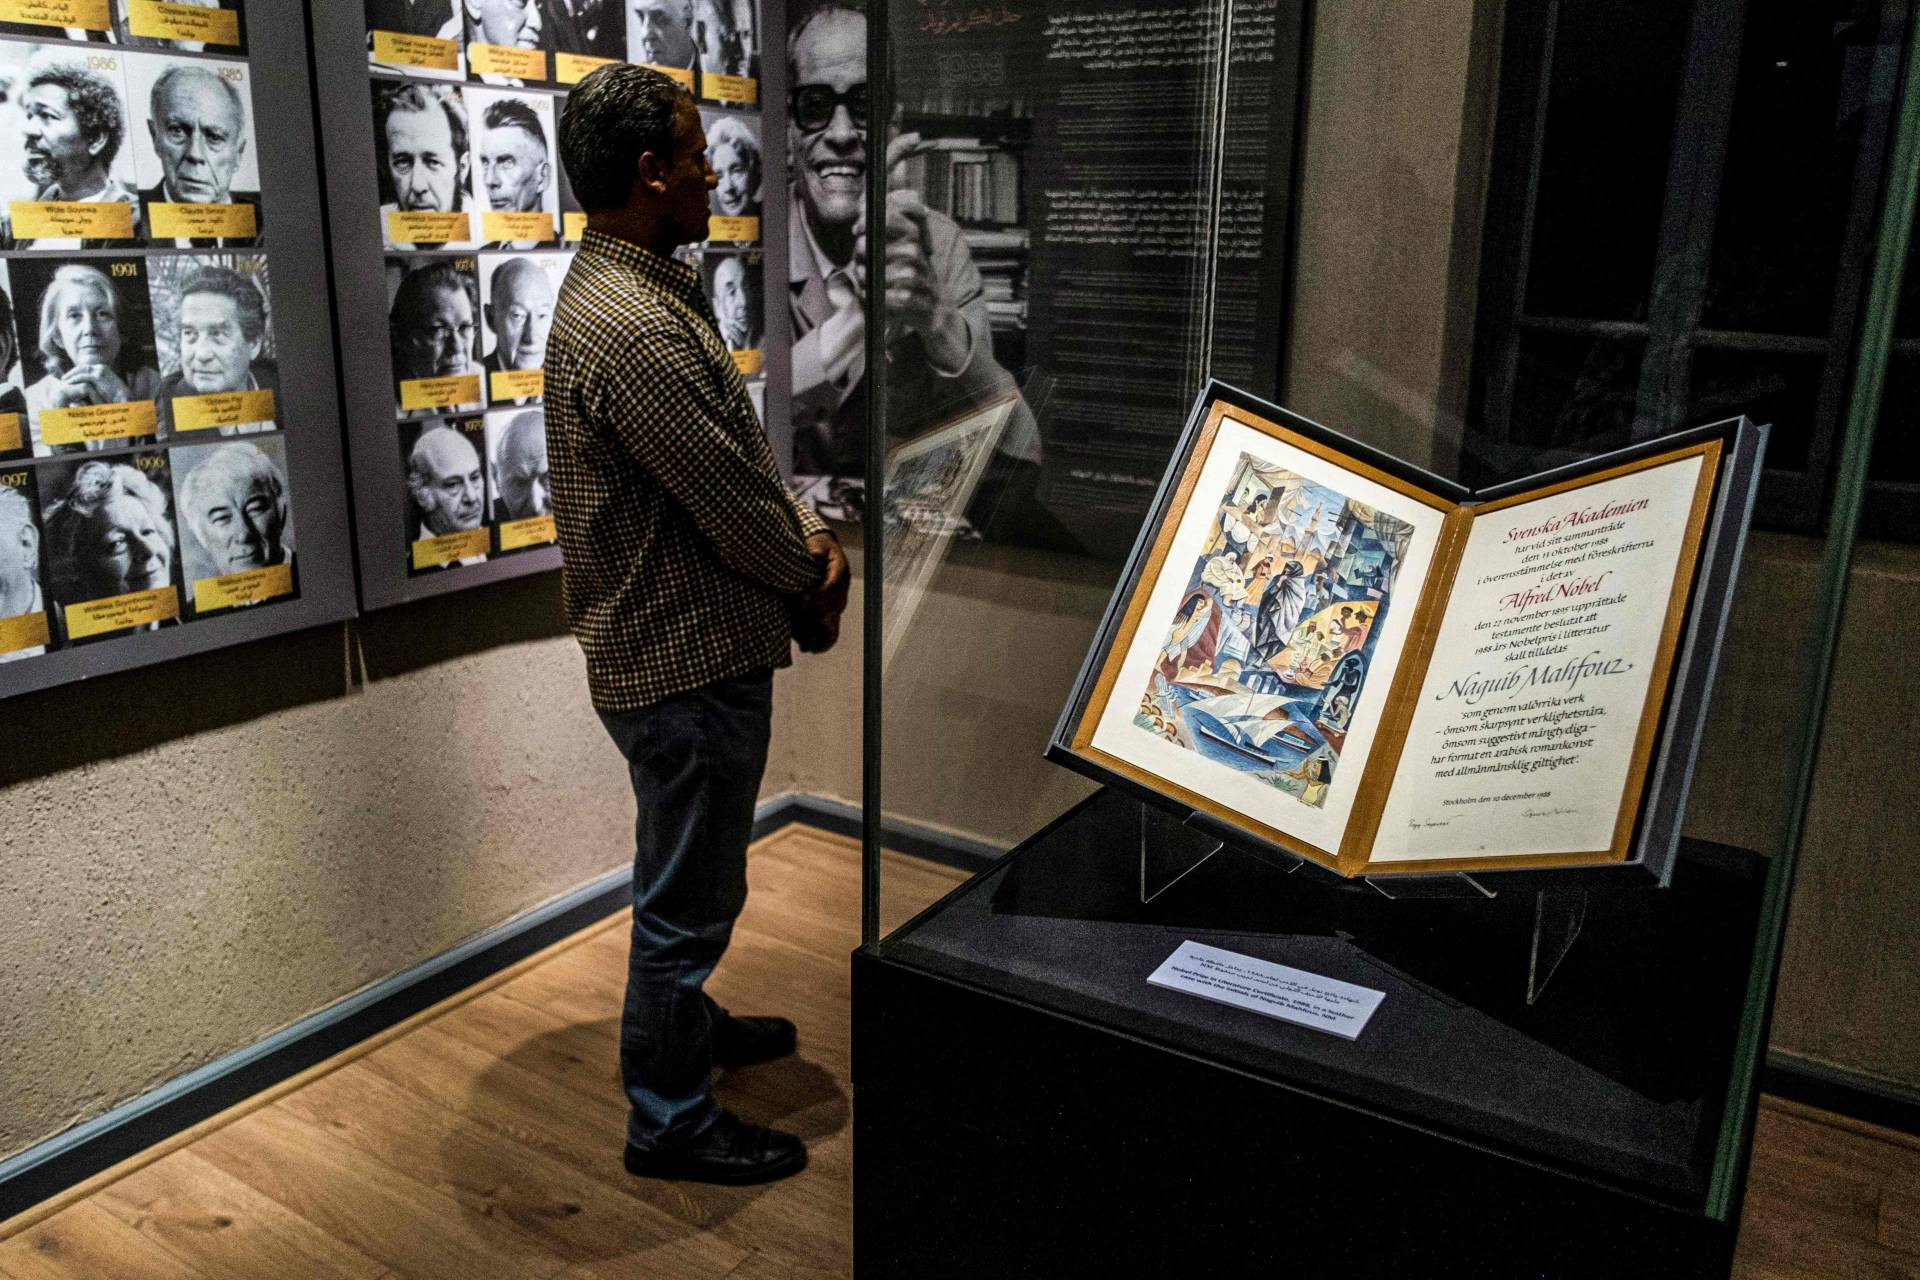 The Nobel Prize certificate of Naguib Mahfouz displayed at his museum in Cairo. Photo: AFP